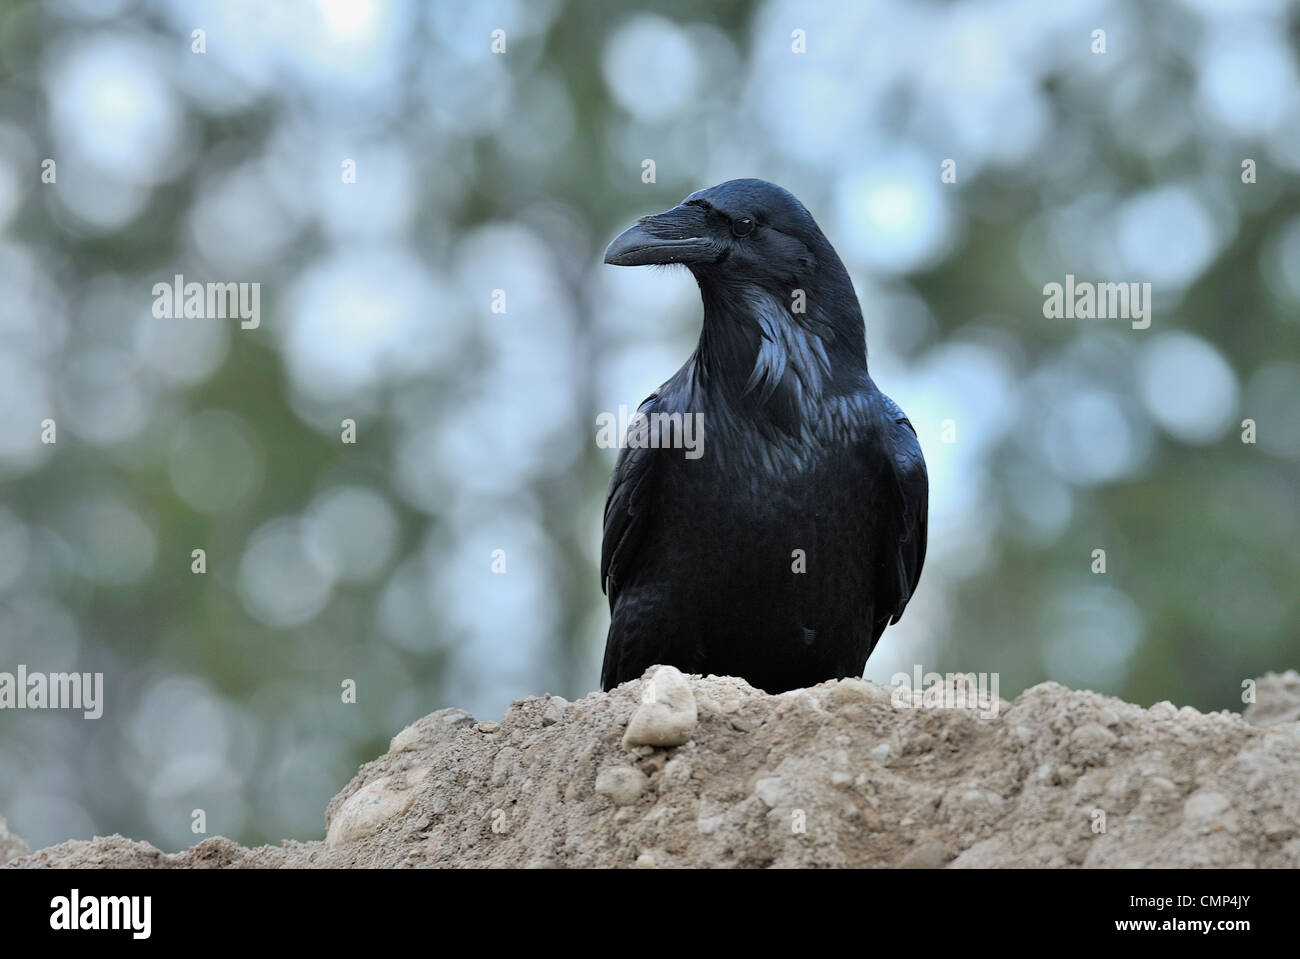 A Raven bird perched on the top of a pile of loose earth - Stock Image